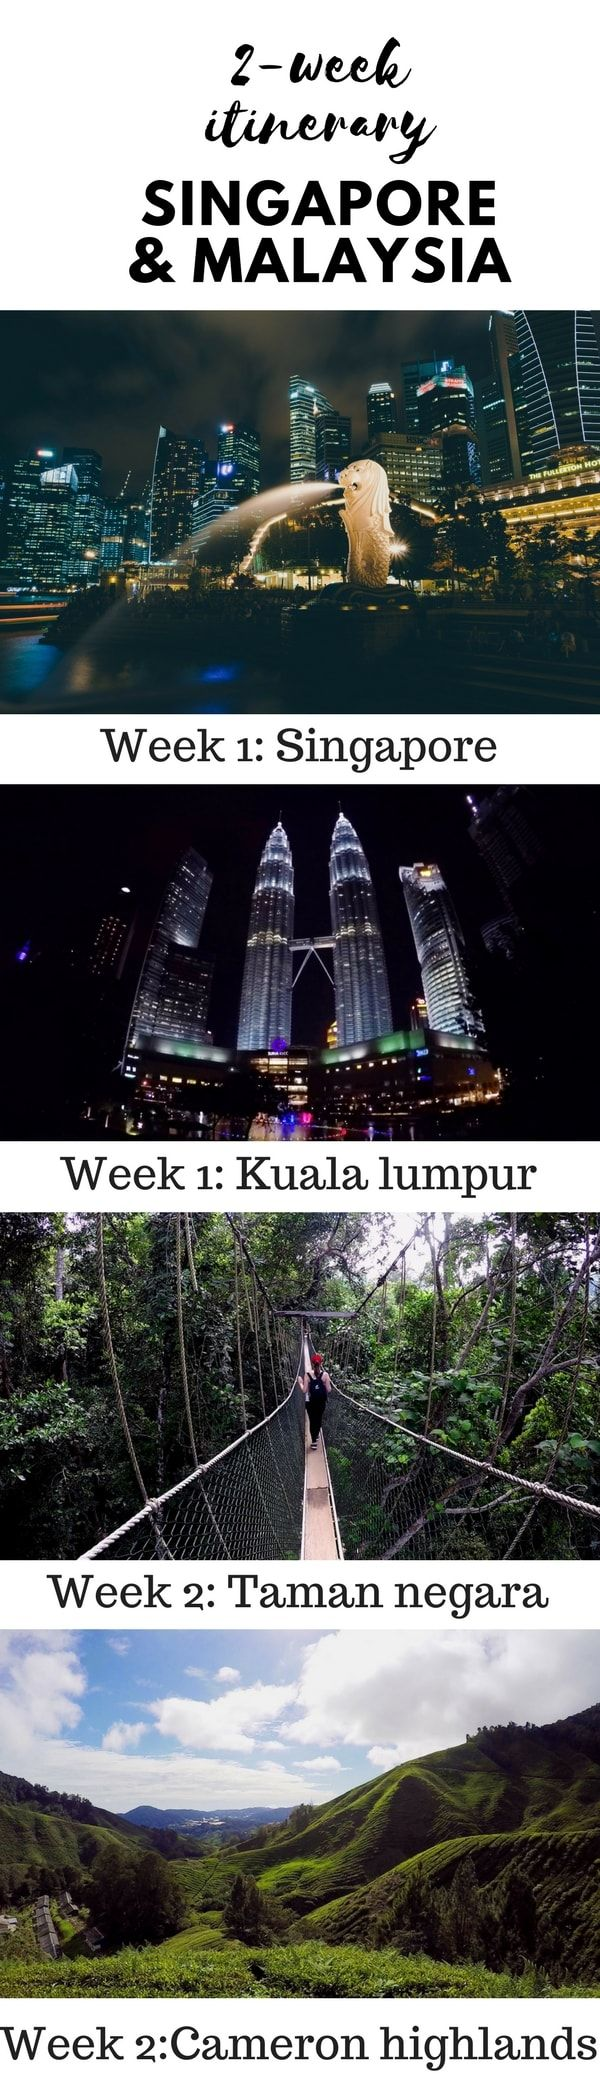 Two week itinerary- Malaysia, Singapore, What to do in Malaysia, What to do in Singapore, How to travel Malaysia, How to travel Singapore